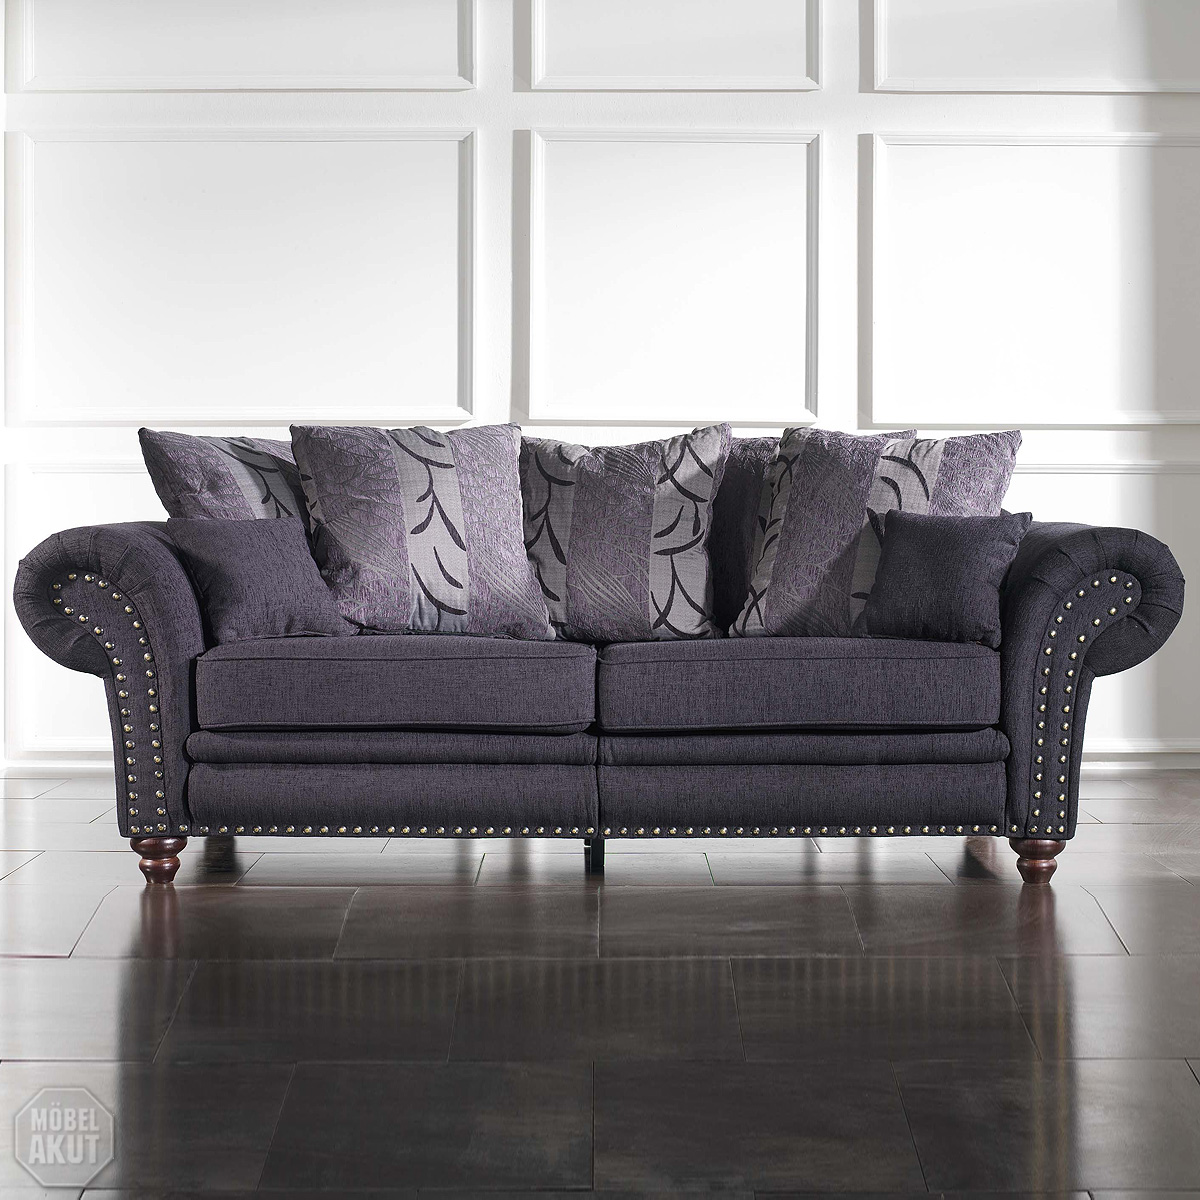 megasofa laos sofa in grau mit nagelung neu ebay. Black Bedroom Furniture Sets. Home Design Ideas